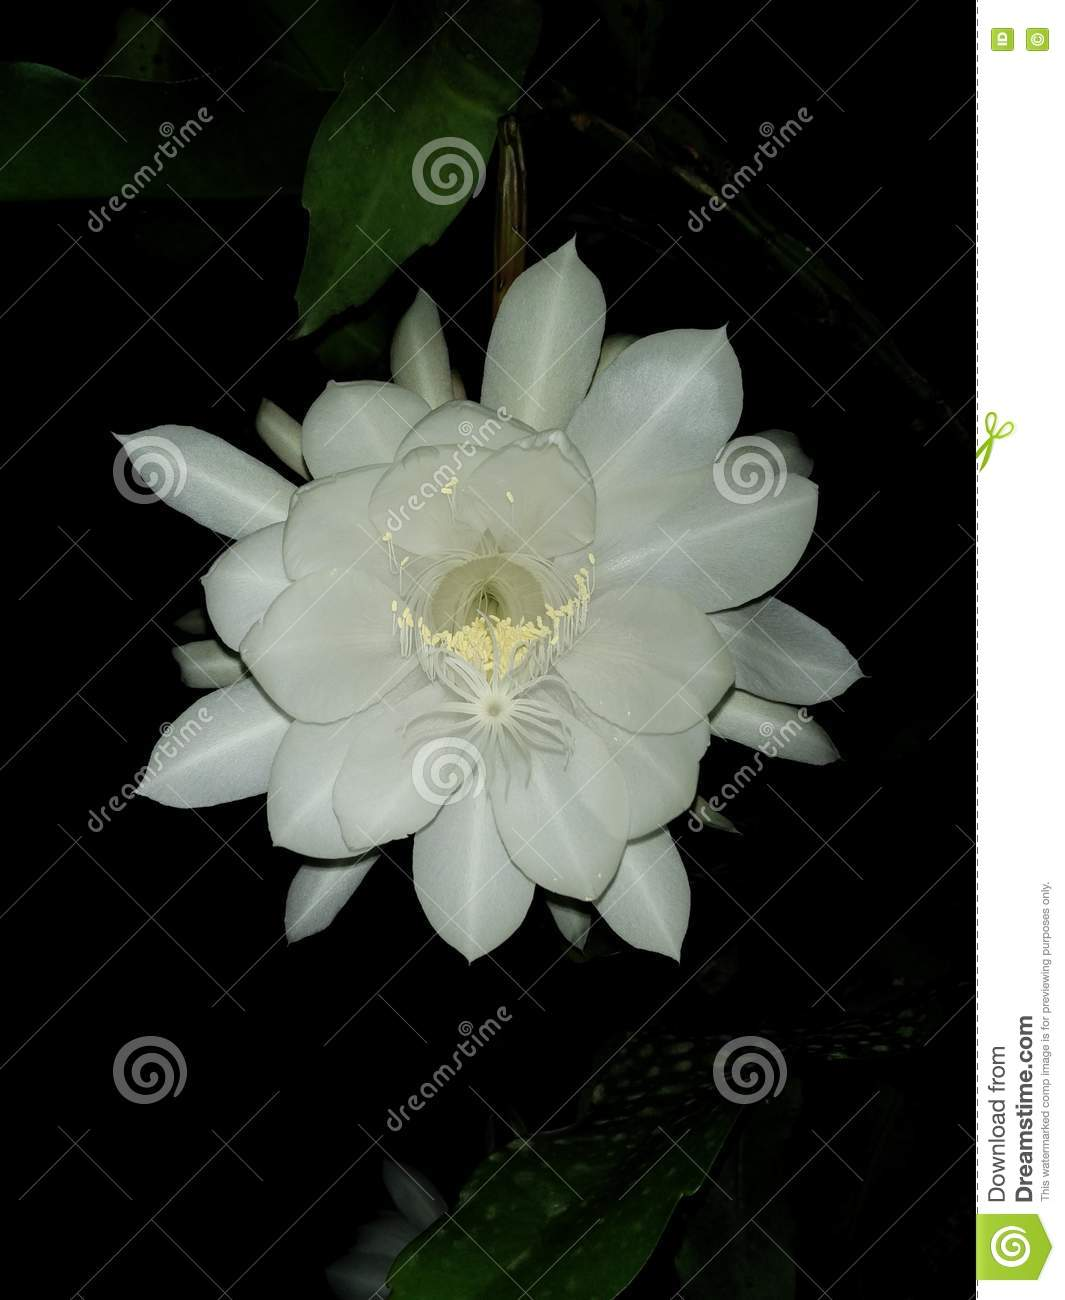 Night blooming jasmine flower stock image image of flower single night blooming jasmine flower izmirmasajfo